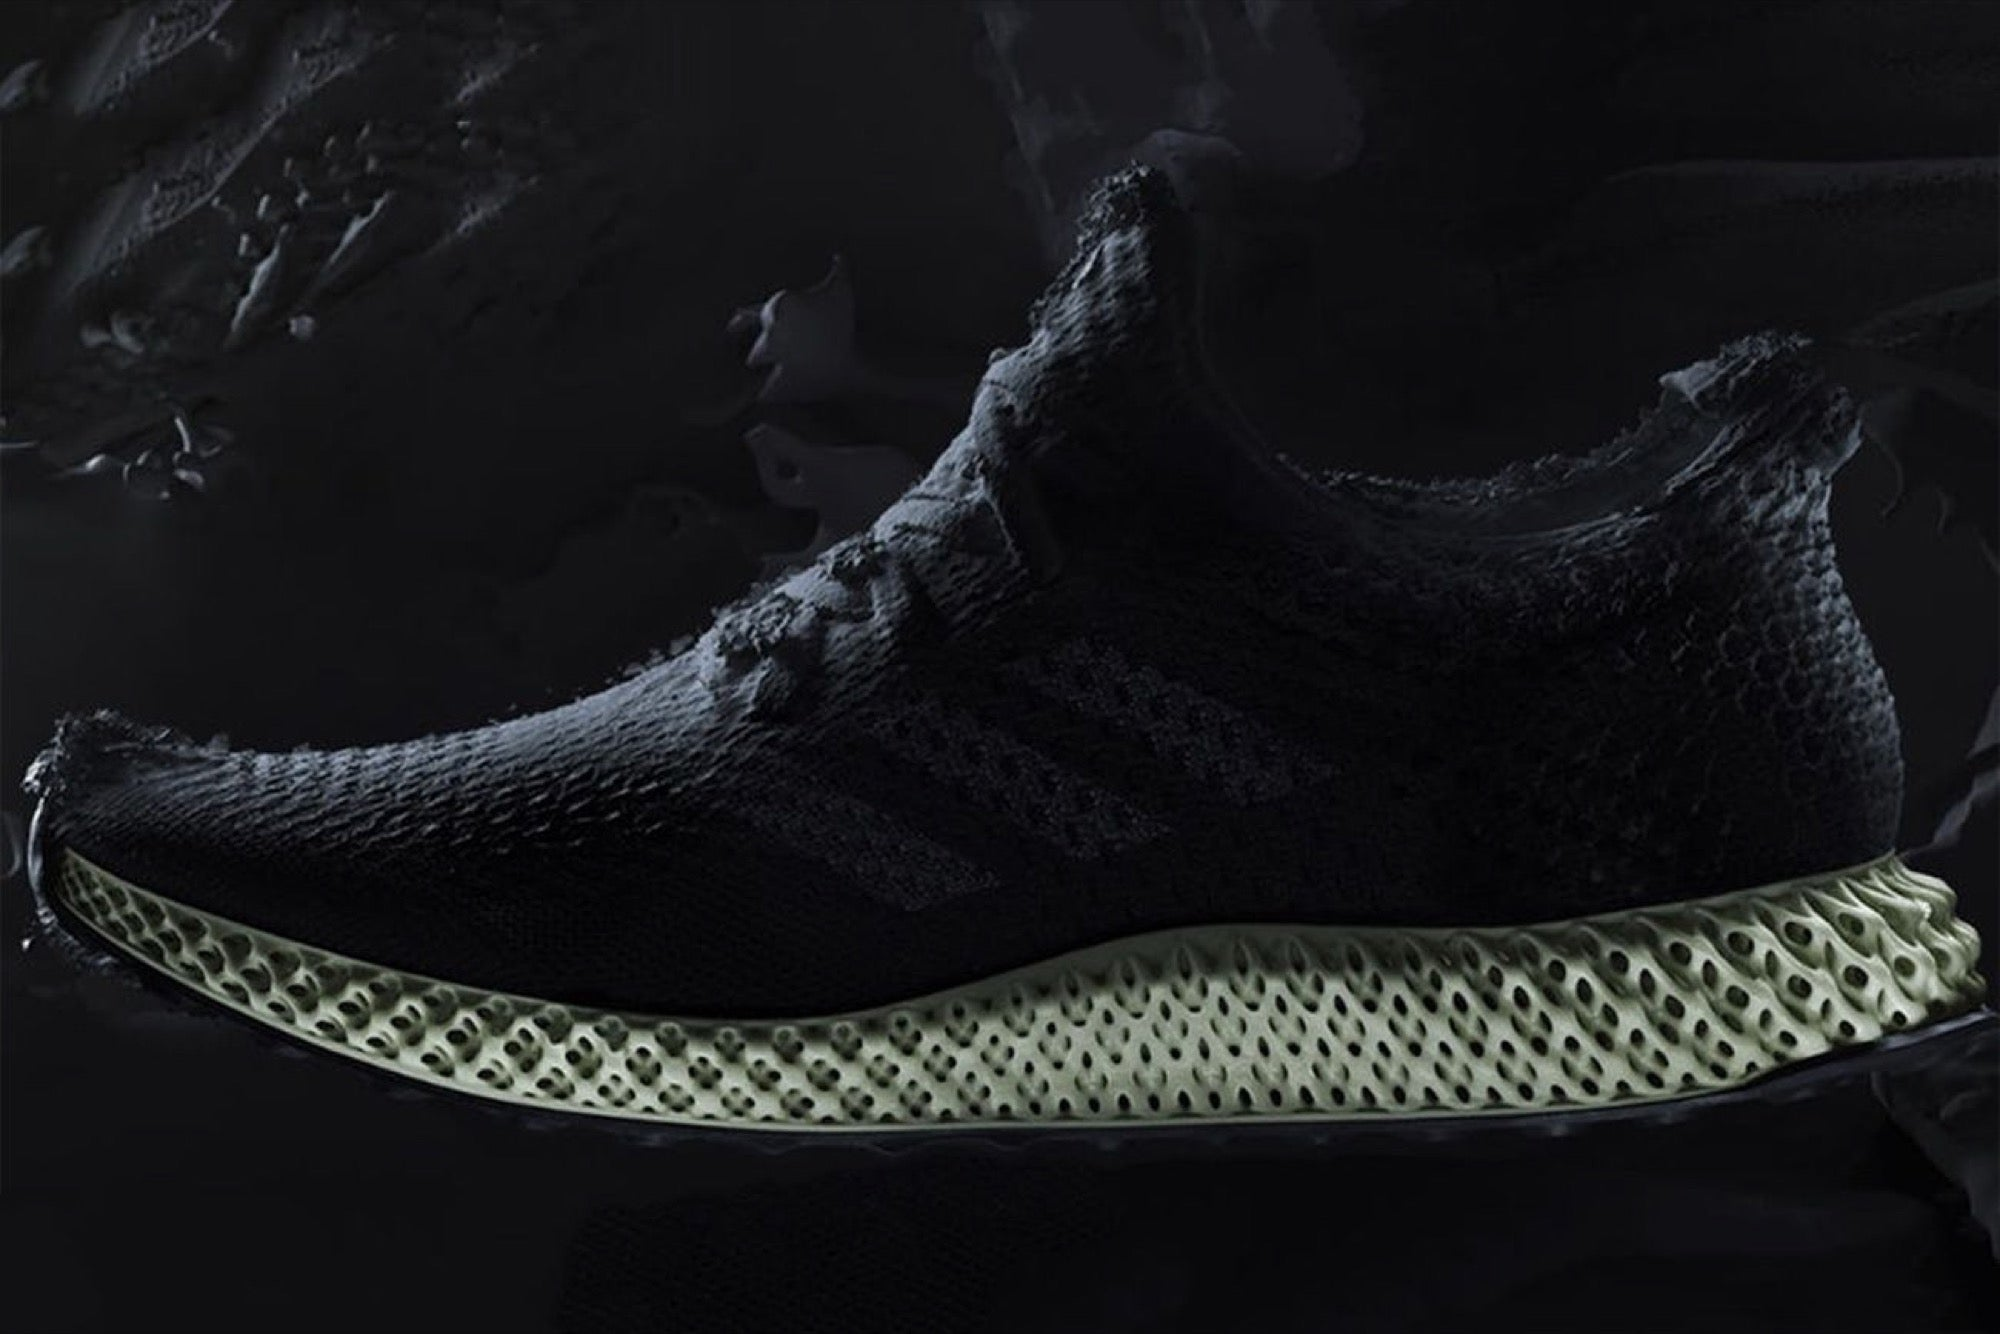 Pirata negro sencillo  Nab an Adidas 3D-Printed Sneaker This Fall